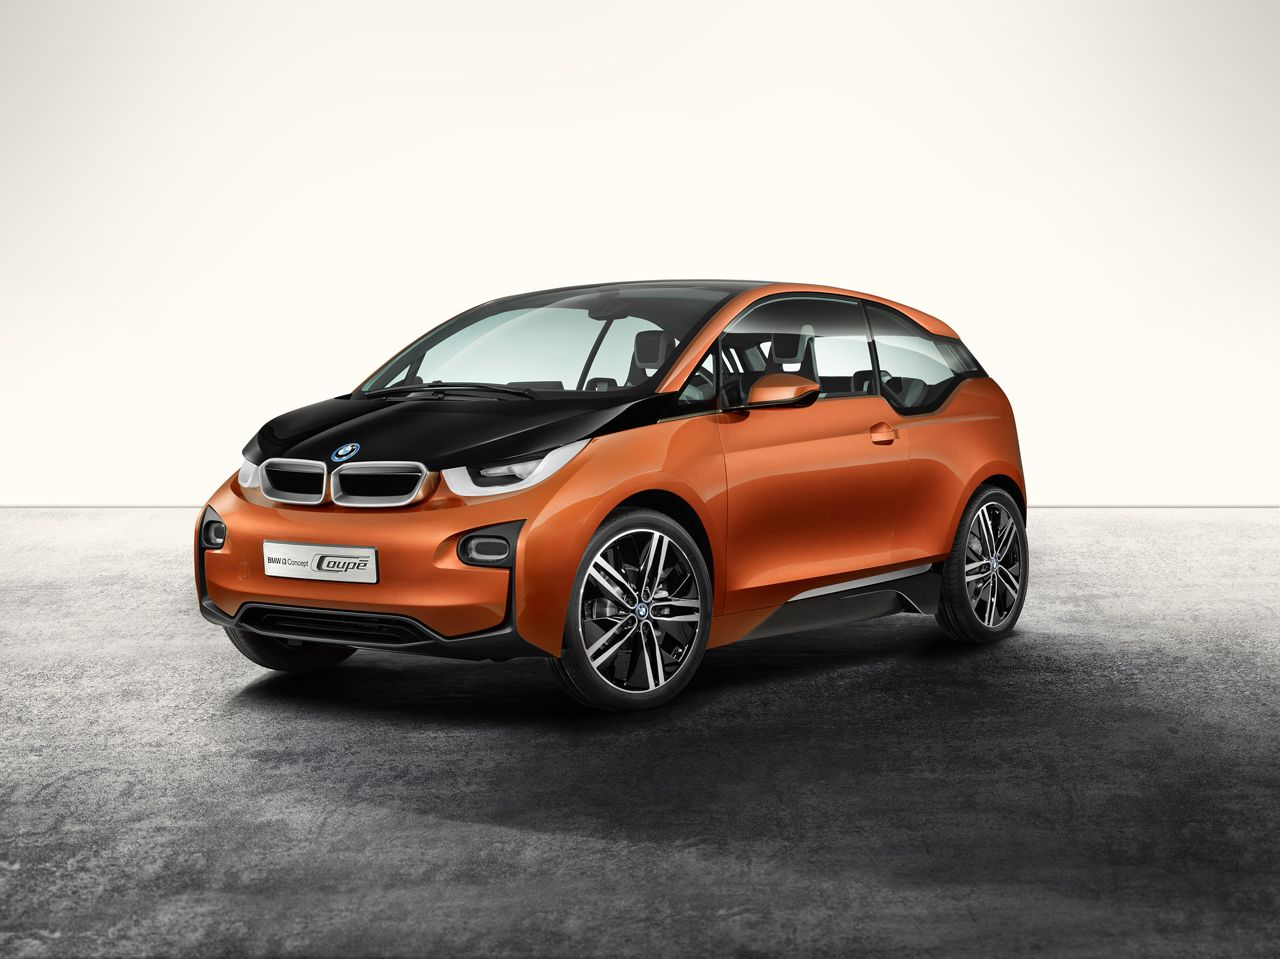 Bmw I3 Concept Coupe Revealed Video Electric Vehicle News